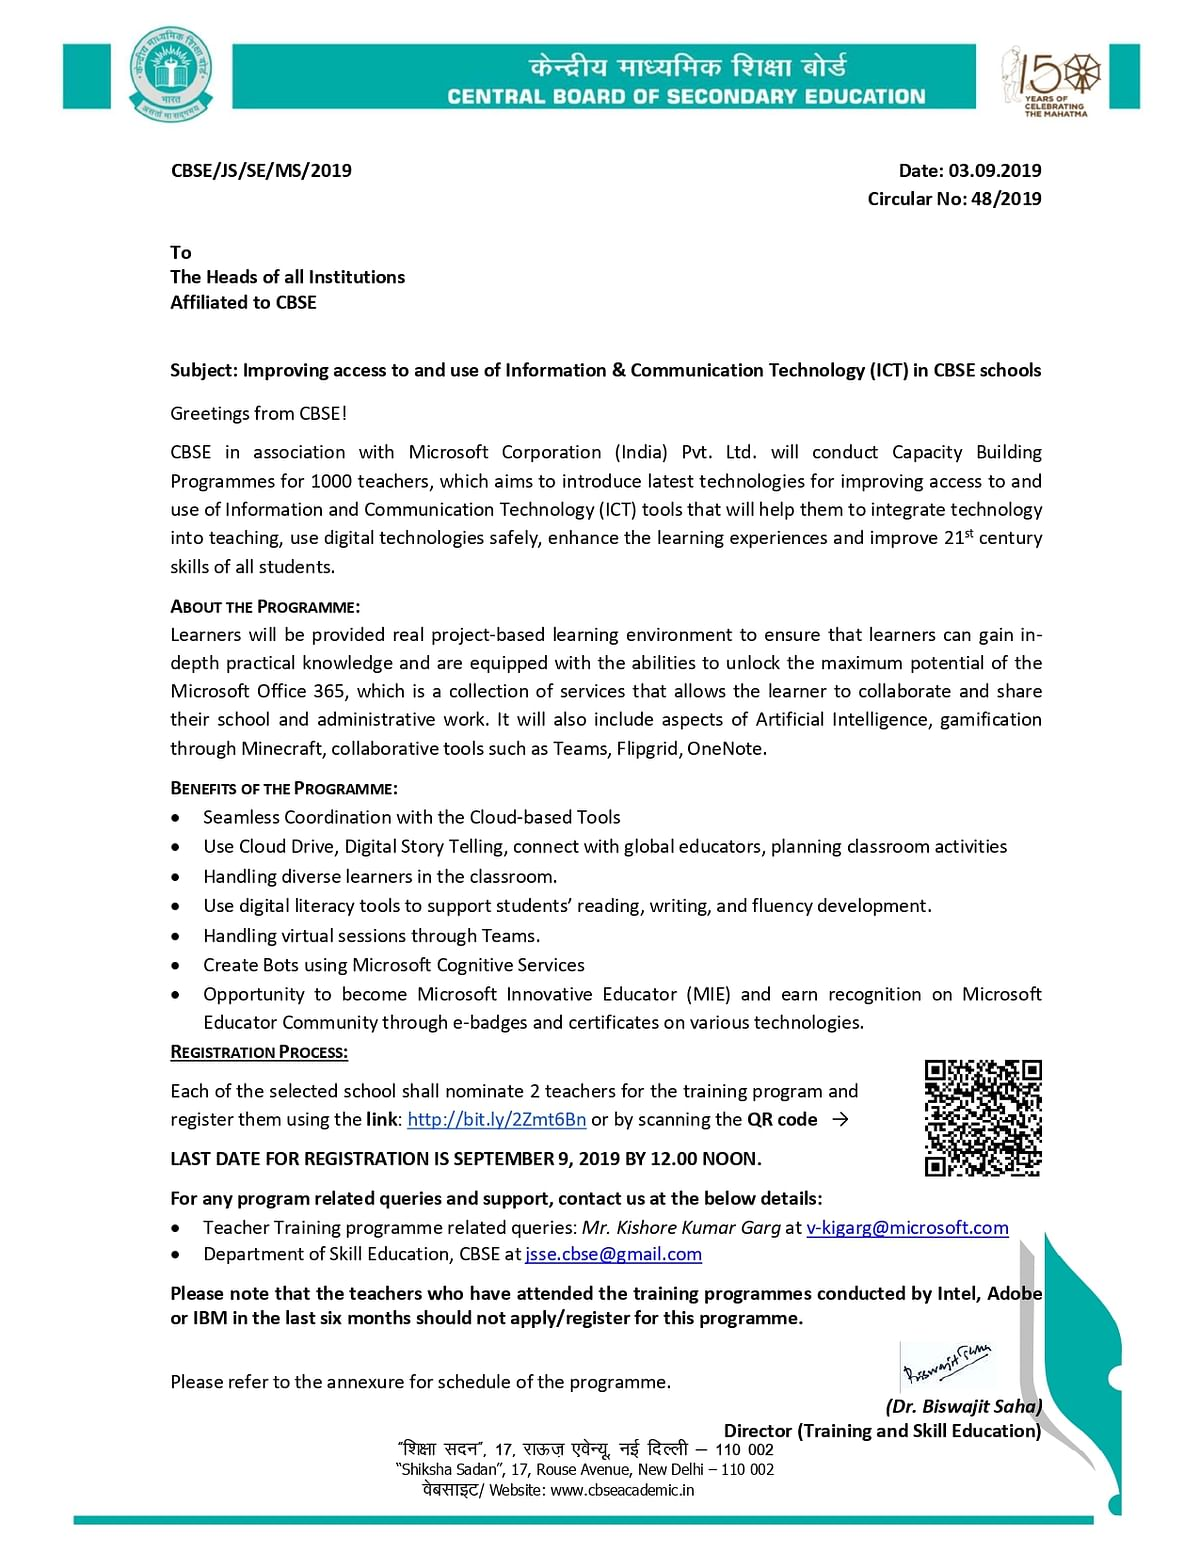 Official circular for the training programme